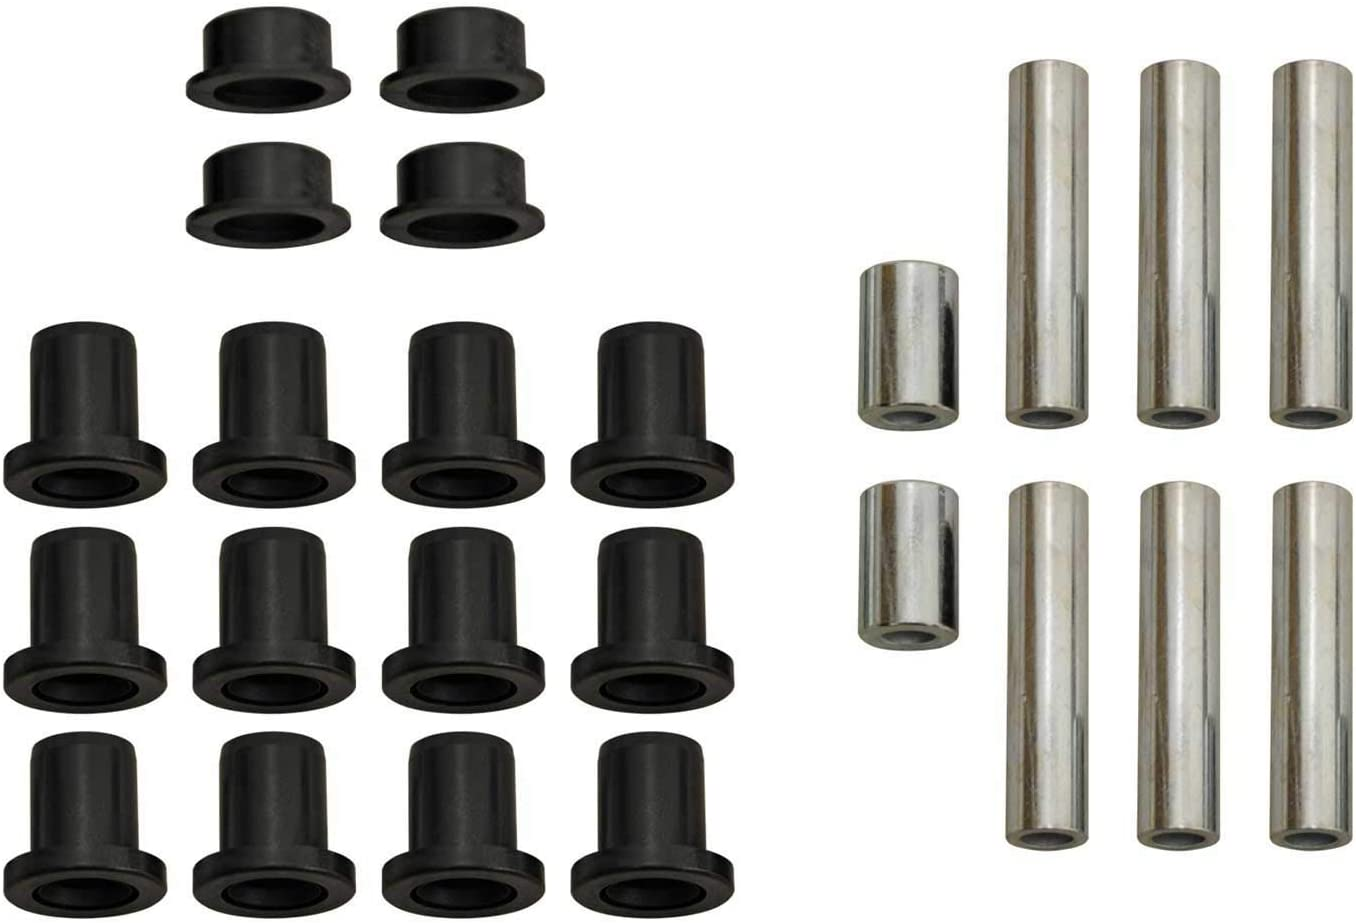 Much Stronger Than Stock! SuperATV Heavy Duty UHMW A-Arm//Control Arm Bushing Kit for Polaris RZR S 1000 2017+ - Front and Rear